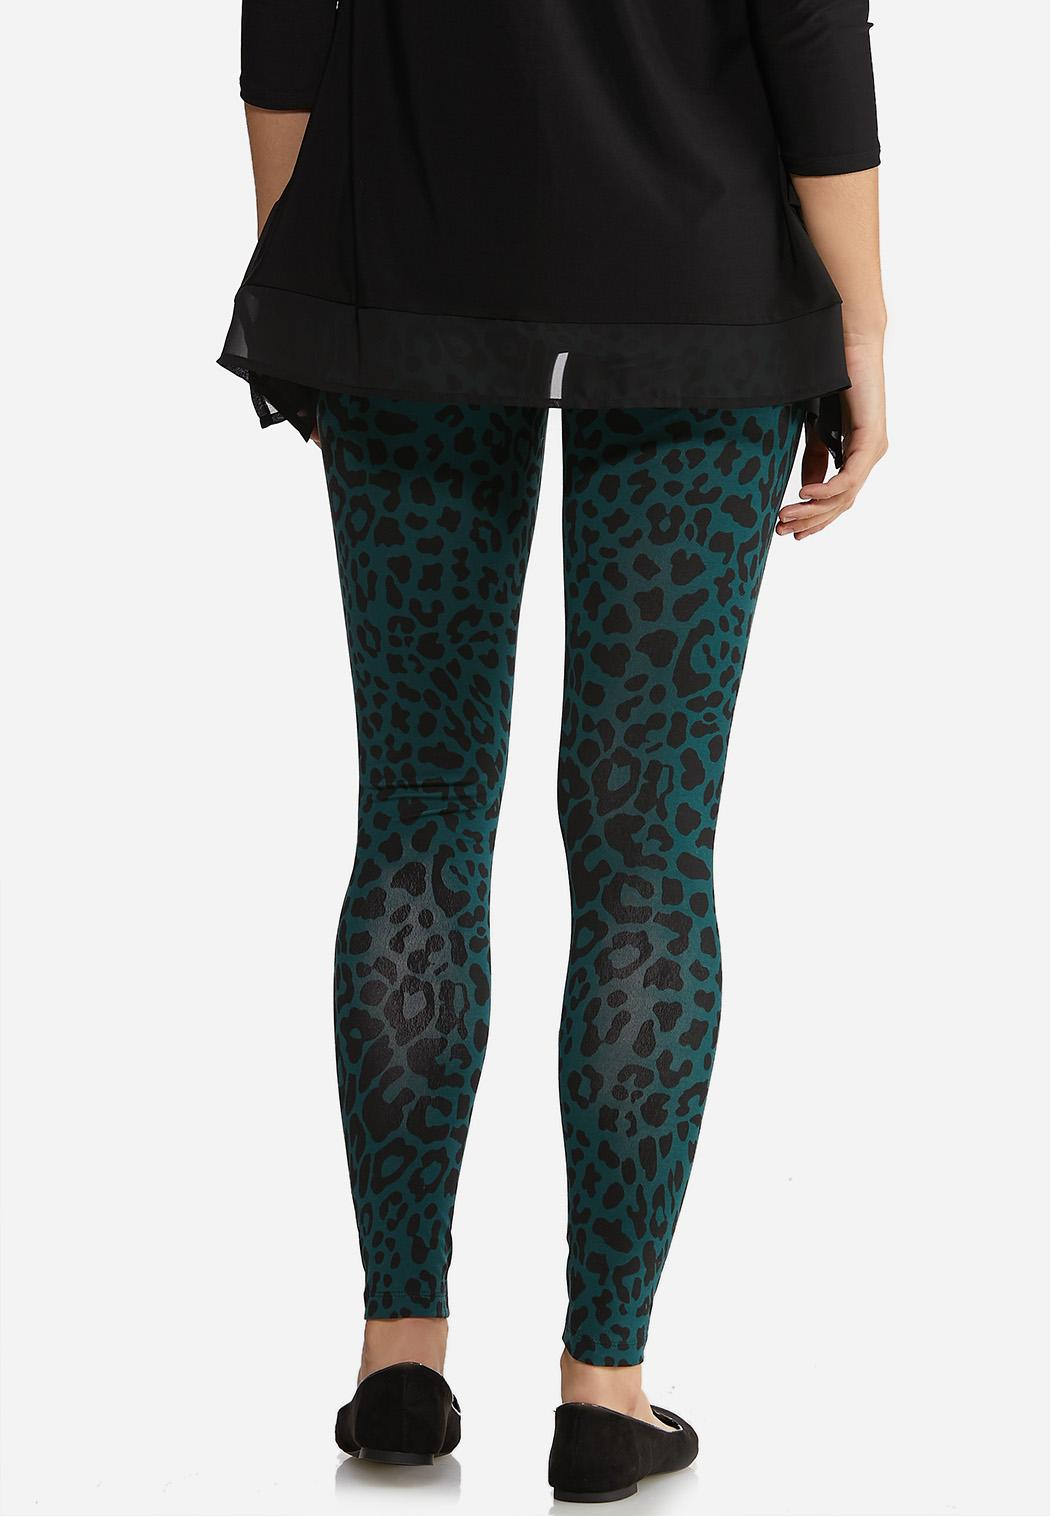 Green Leopard Leggings (Item #44024784)